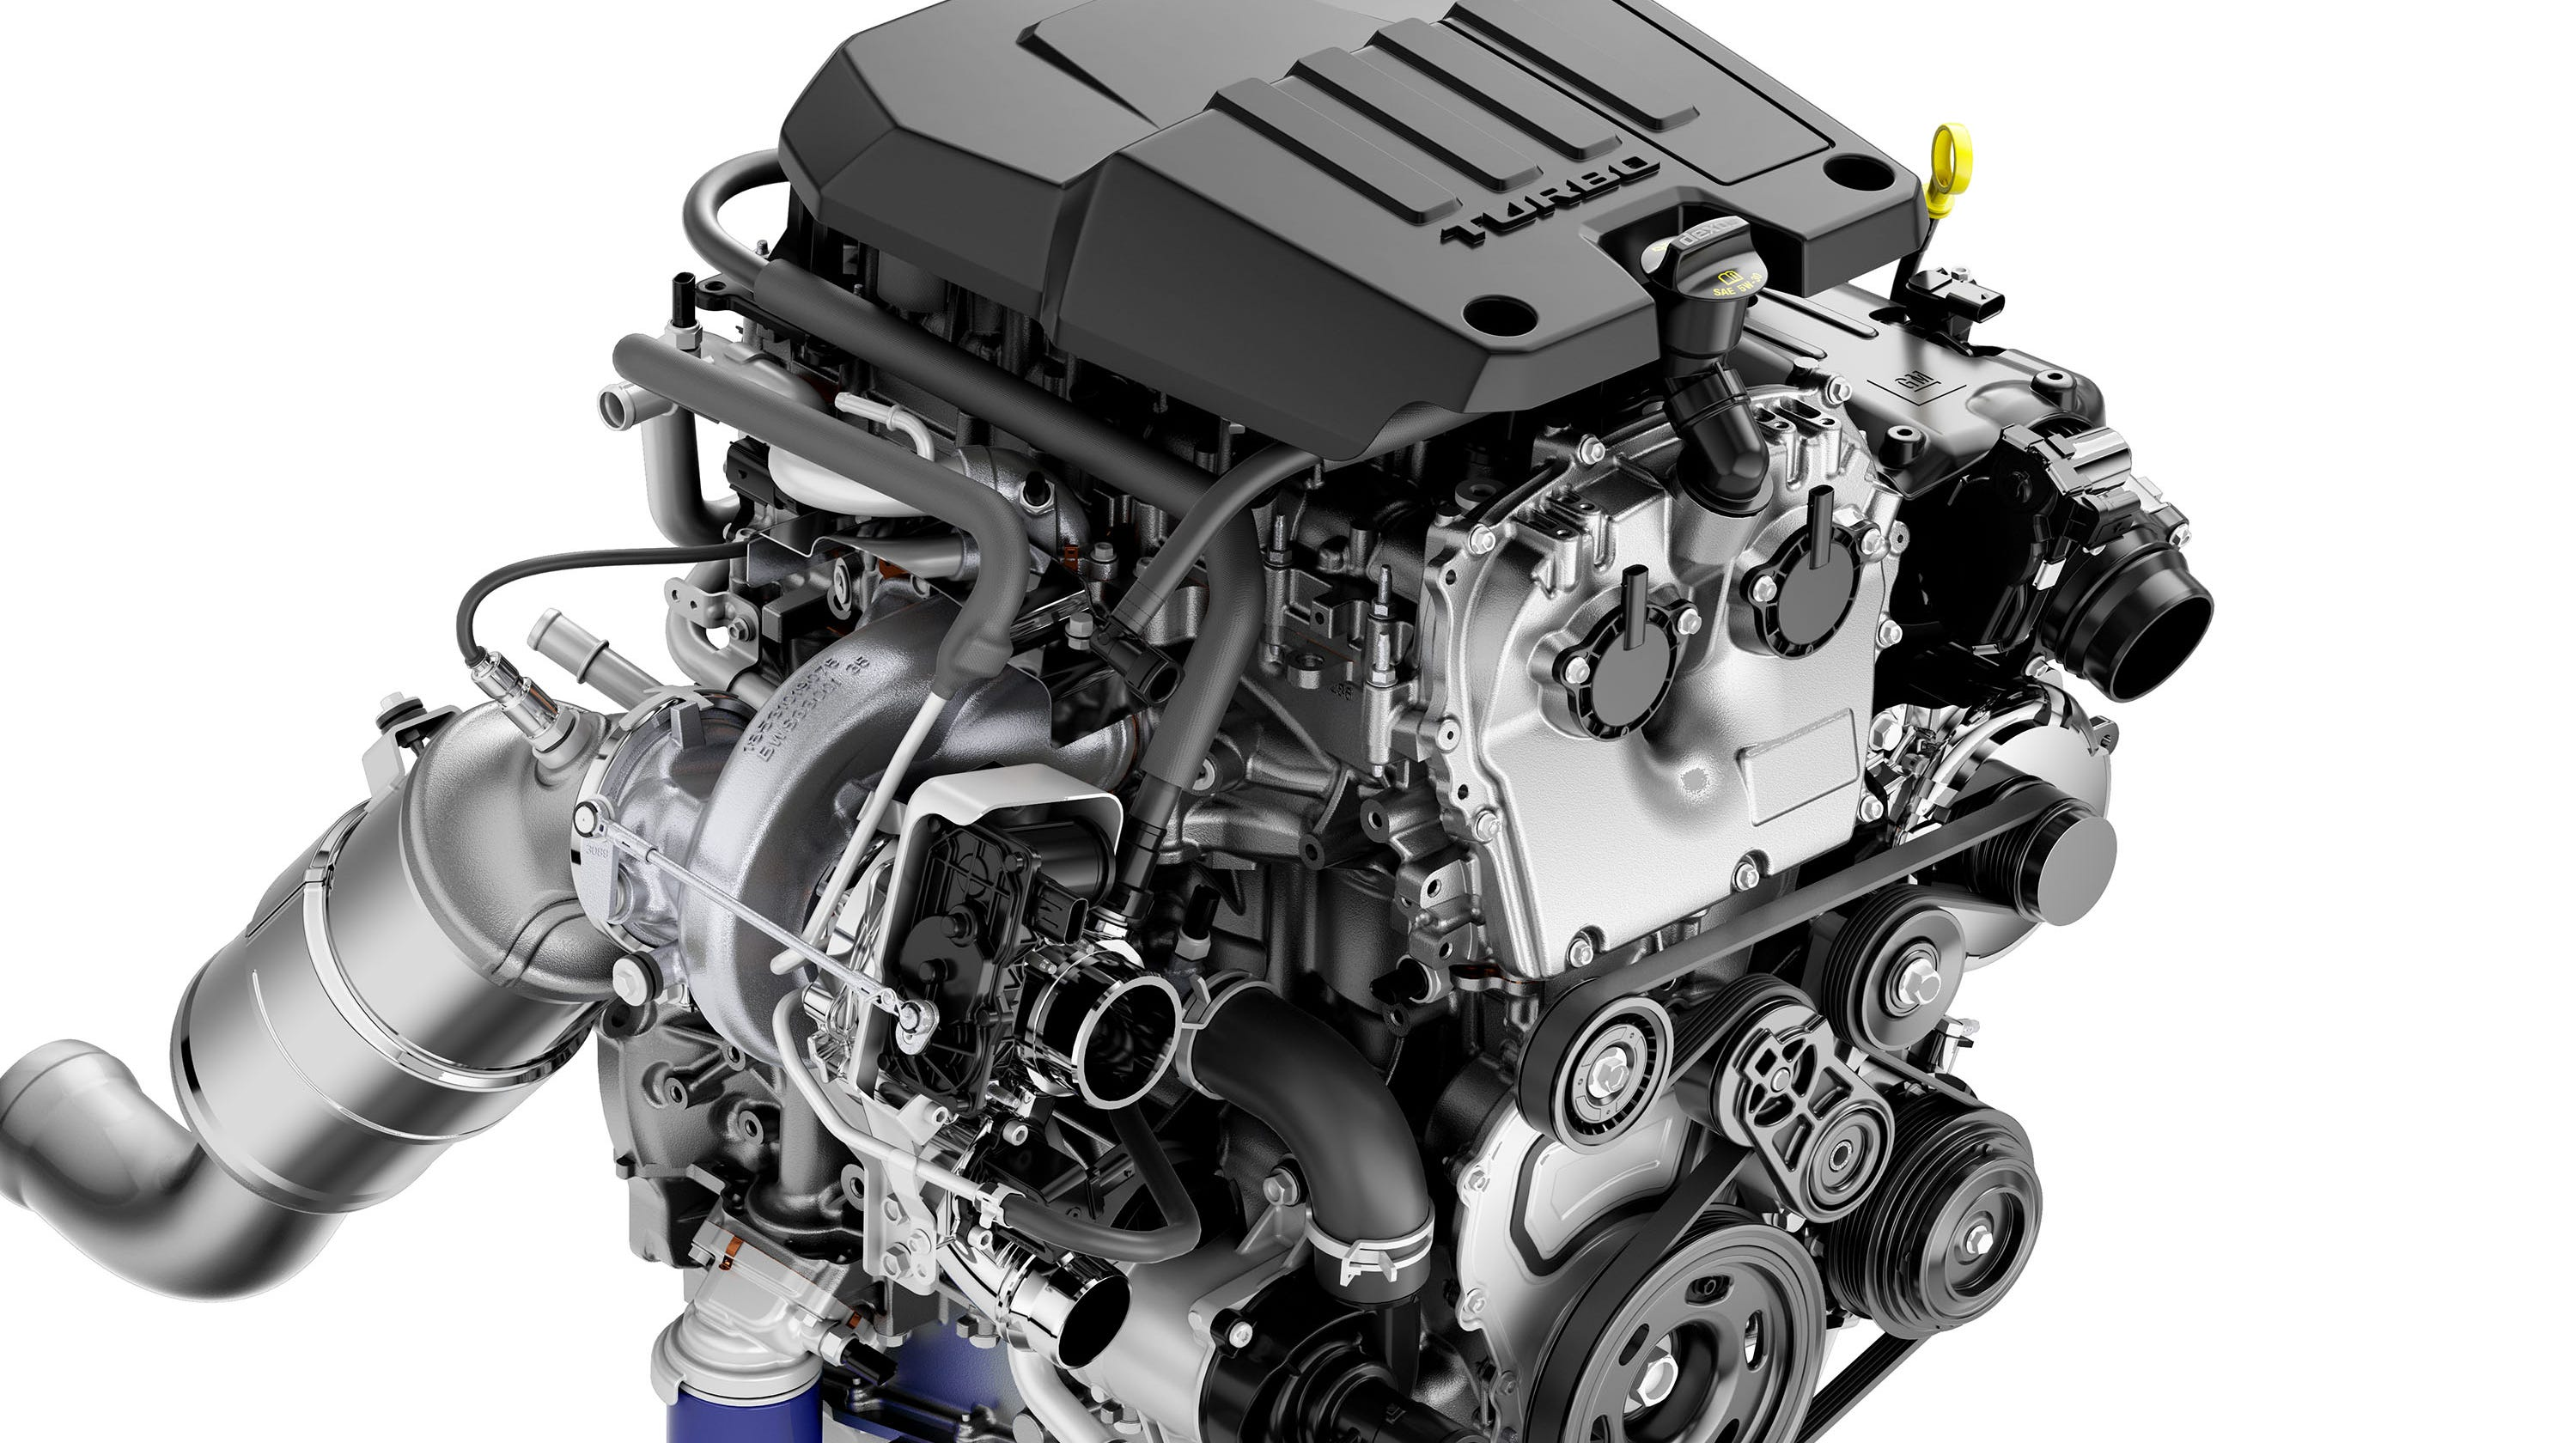 New 4 Cylinder Engine Pushes Fuel Economy Over 20 Mpg For 2019 Silverado